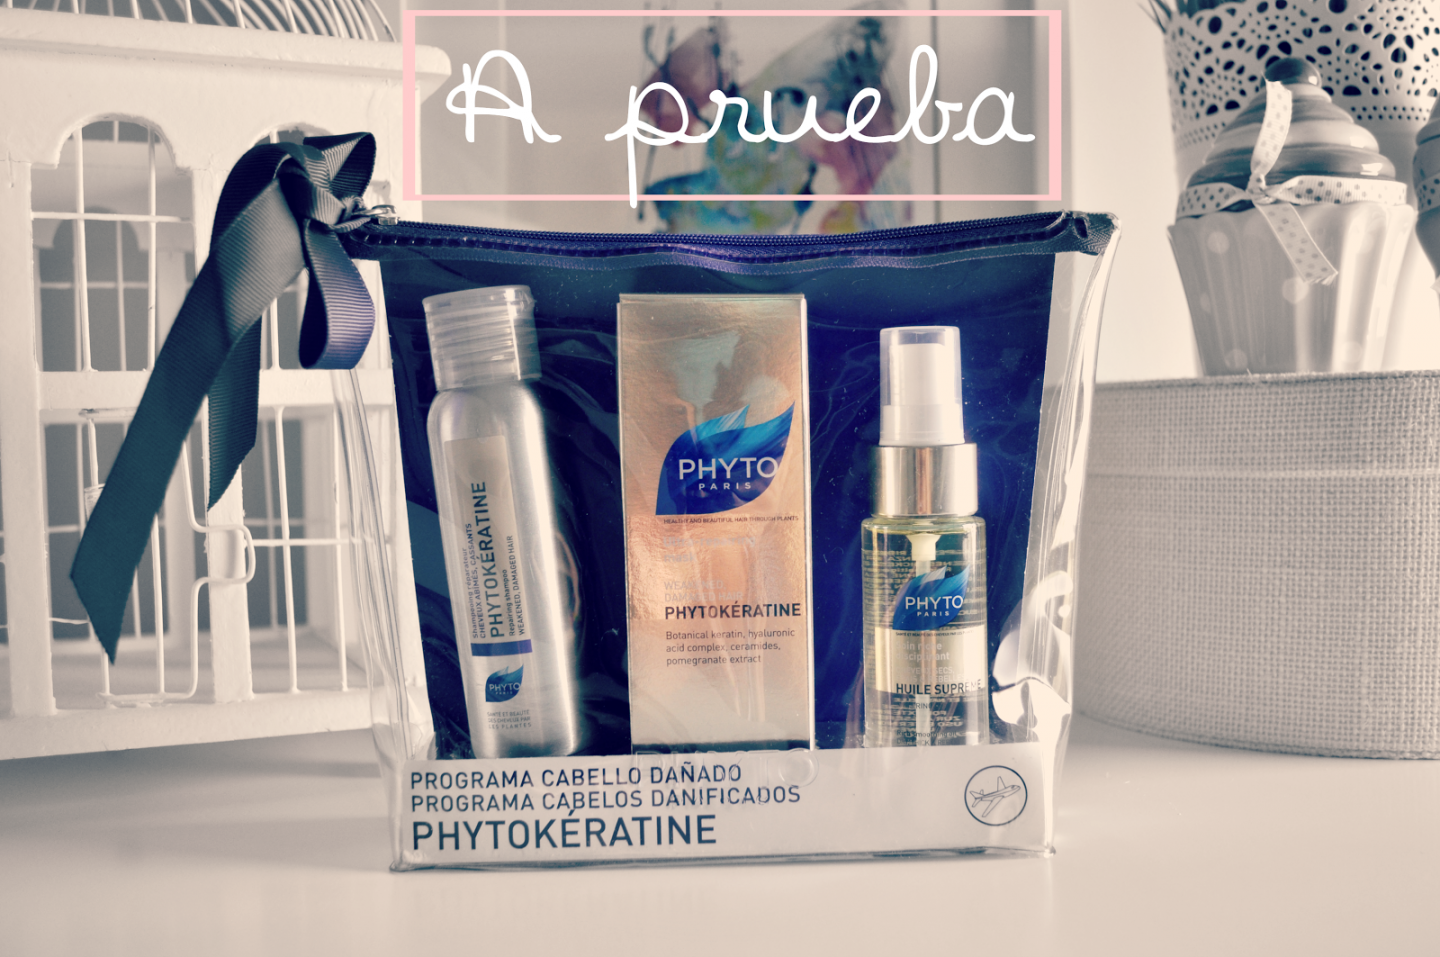 Kit Phytokeratine de Phyto Paris